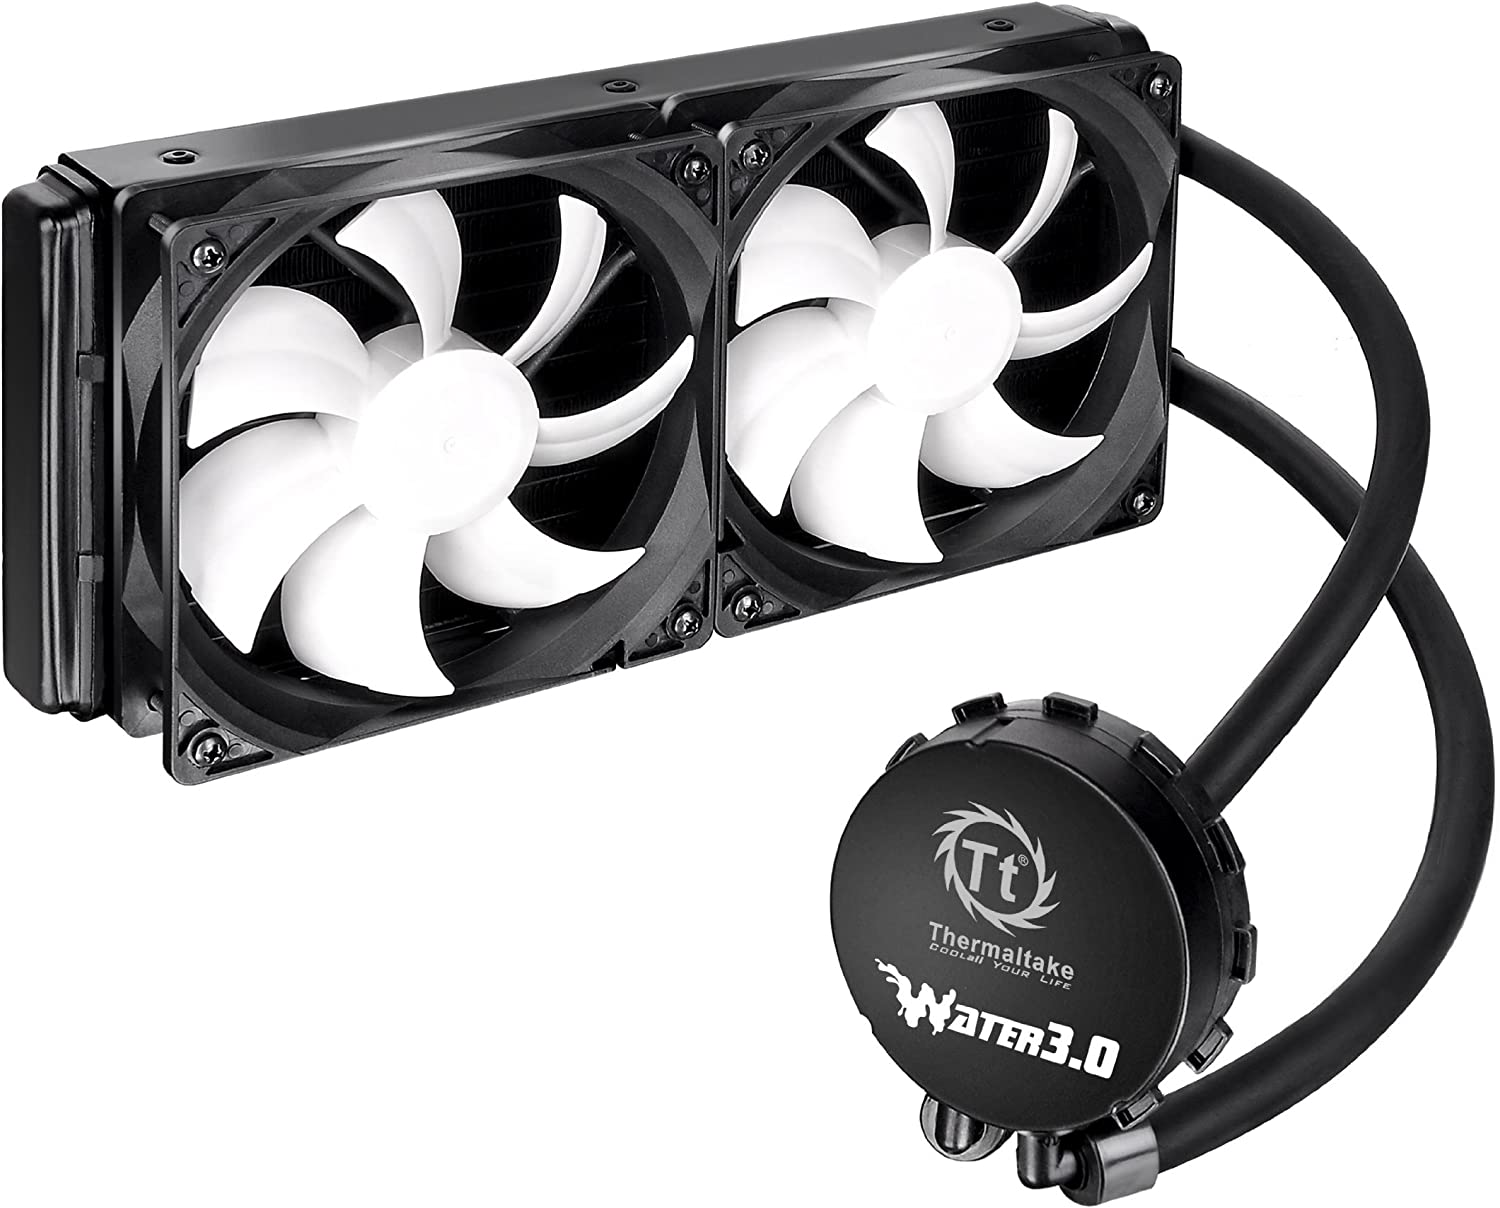 Thermaltake Water 3.0 Extreme S 240mm Aluminum Radiator AIO Liquid Cooling System CPU Cooler CLW0224-B